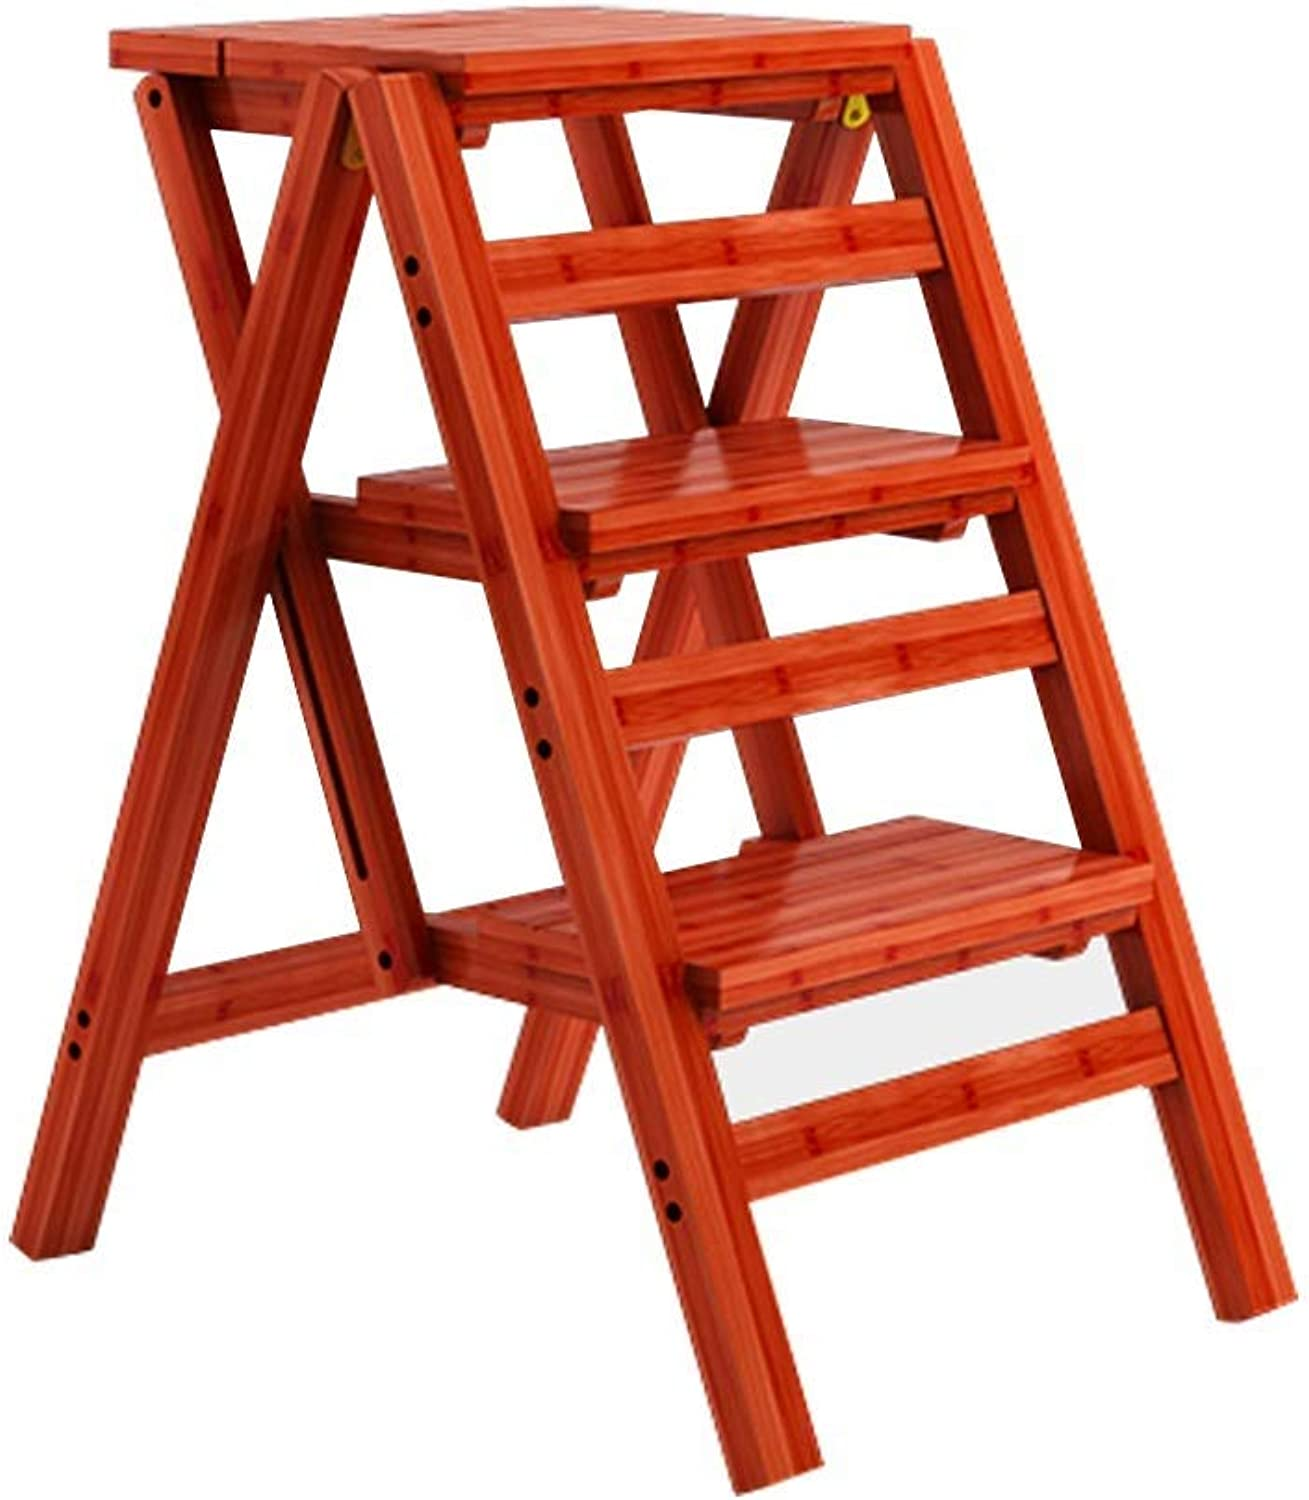 3 Step Ladder Step Stool, Foldable Step Stool, Climbing Ladder, Indoor Outdoor Flower Stand Plant Frame Garden (42cm × 55cm × 68cm)